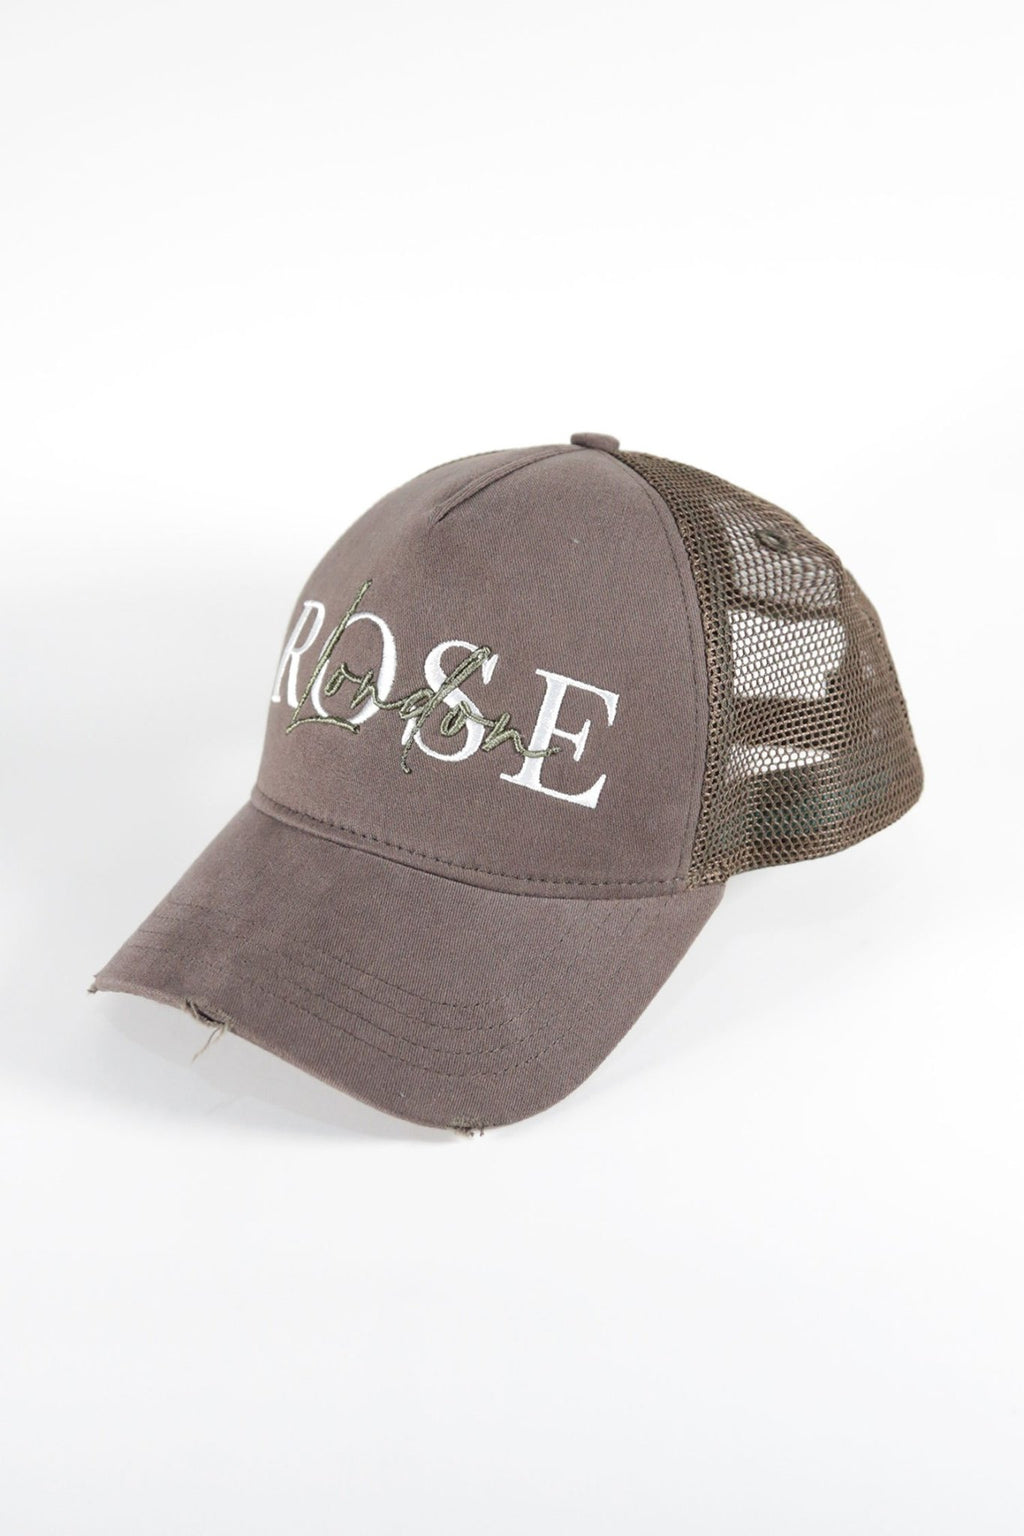 Rose London Mesh Back Distressed 3D LA Cap in Khaki - Rose London